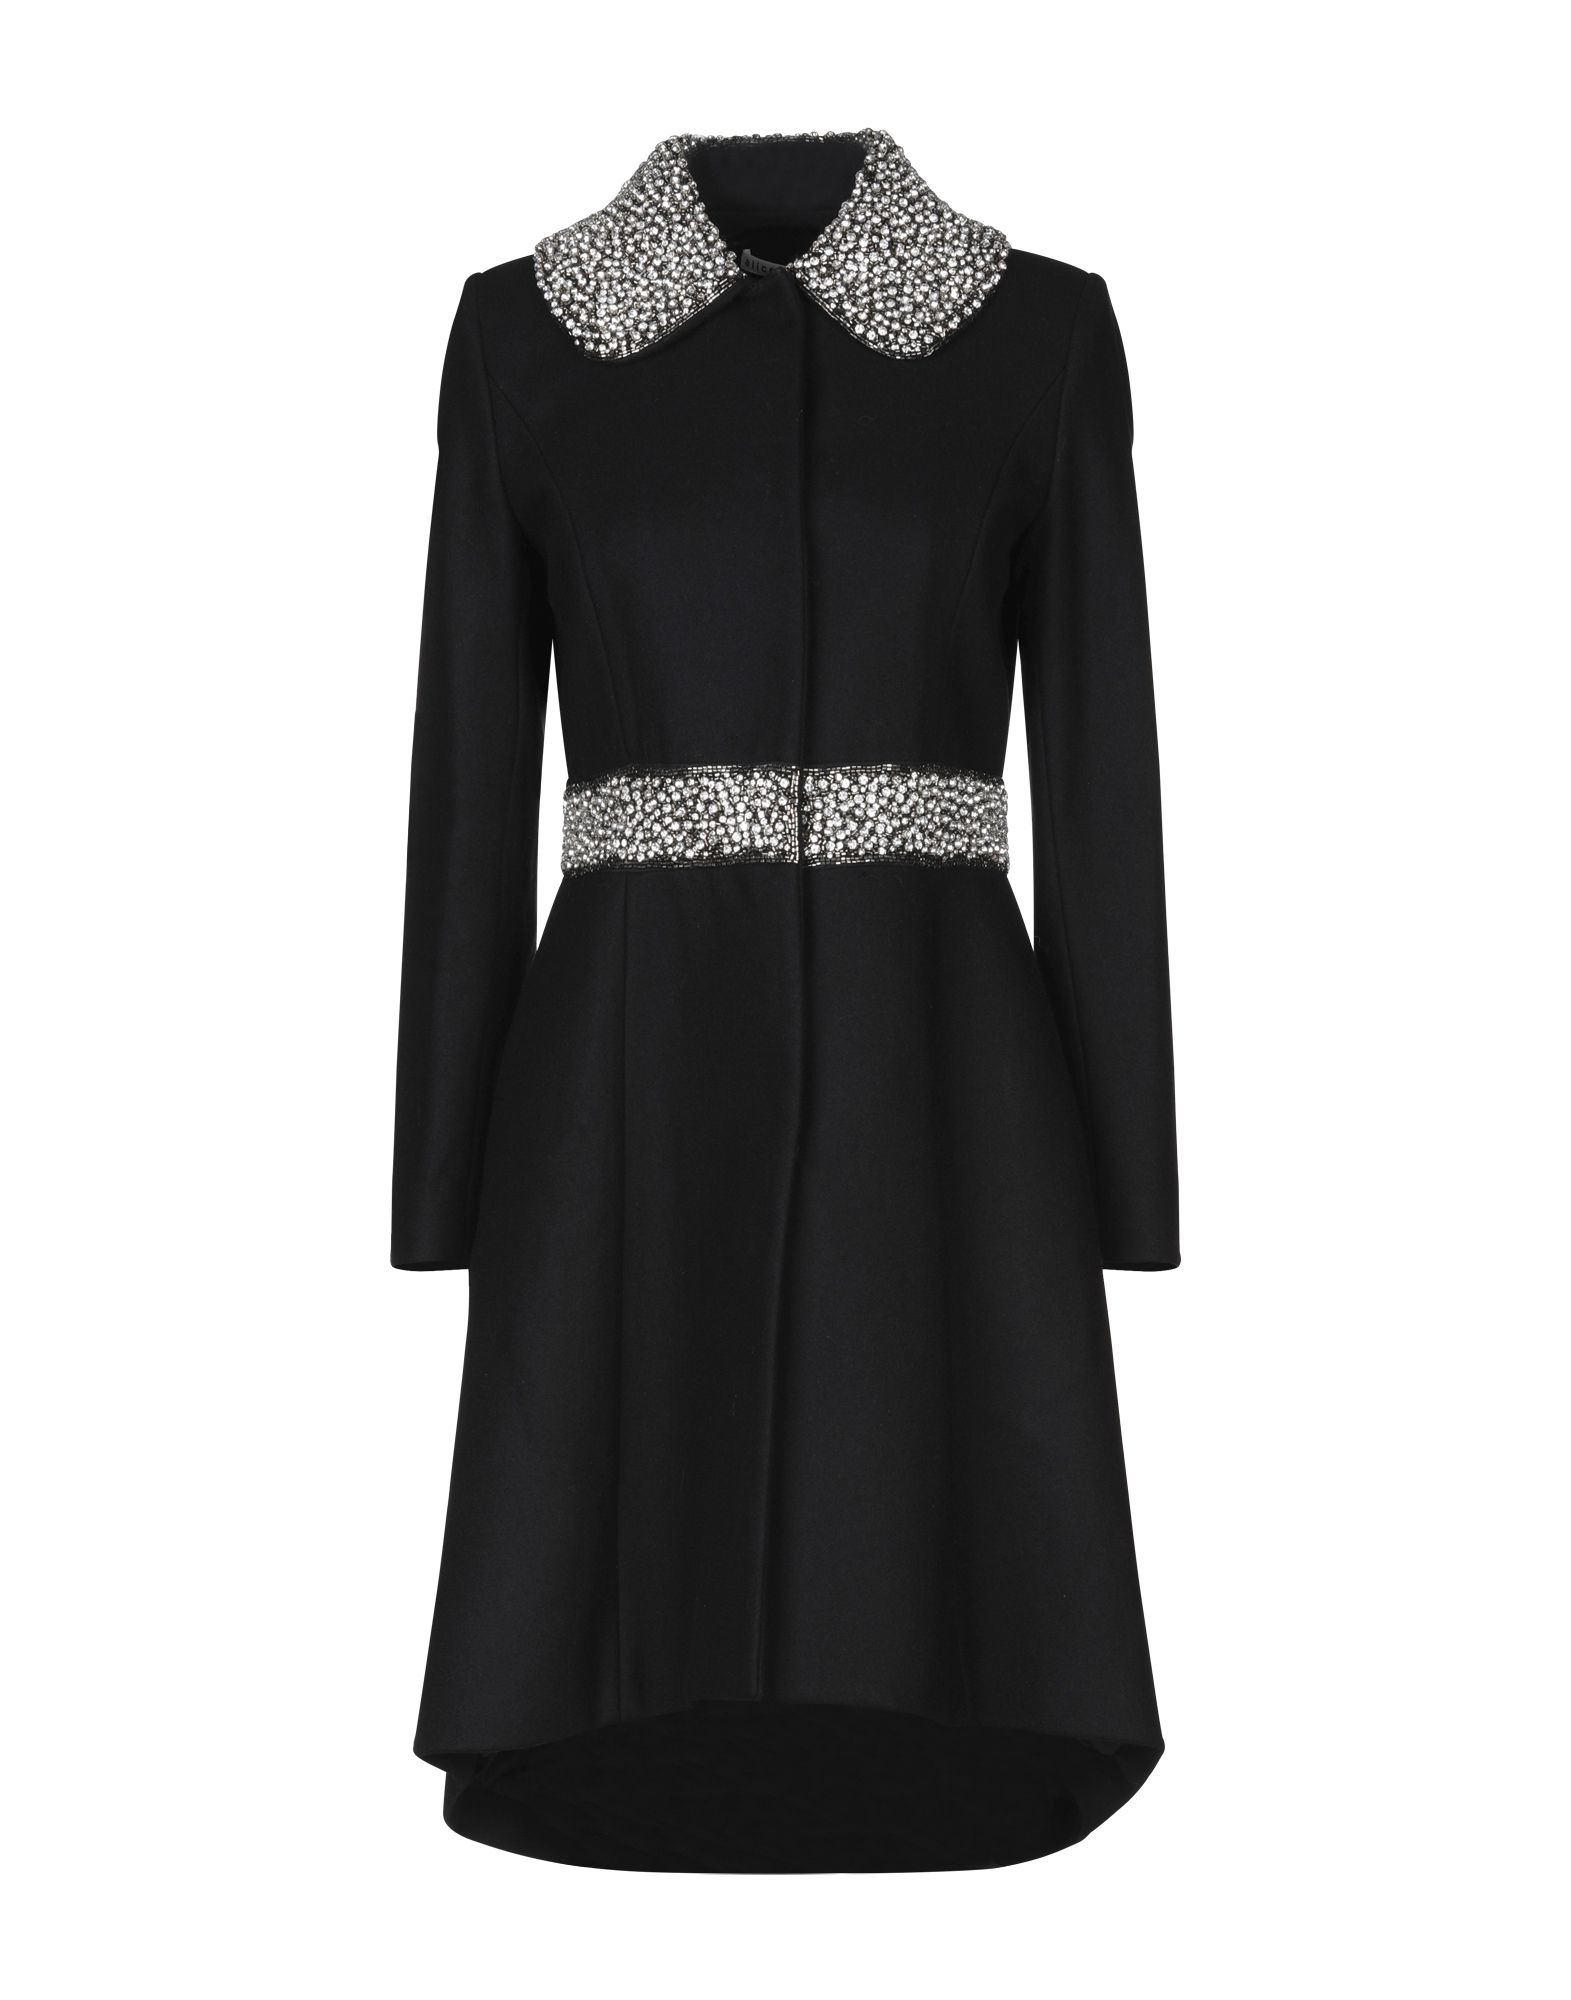 ALICE + OLIVIA Coats. flannel, rhinestones, solid color, single-breasted, snap buttons fastening, peter pan collar, multipockets, long sleeves, fully lined, large sized. 80% Virgin Wool, 20% Nylon, Polyester